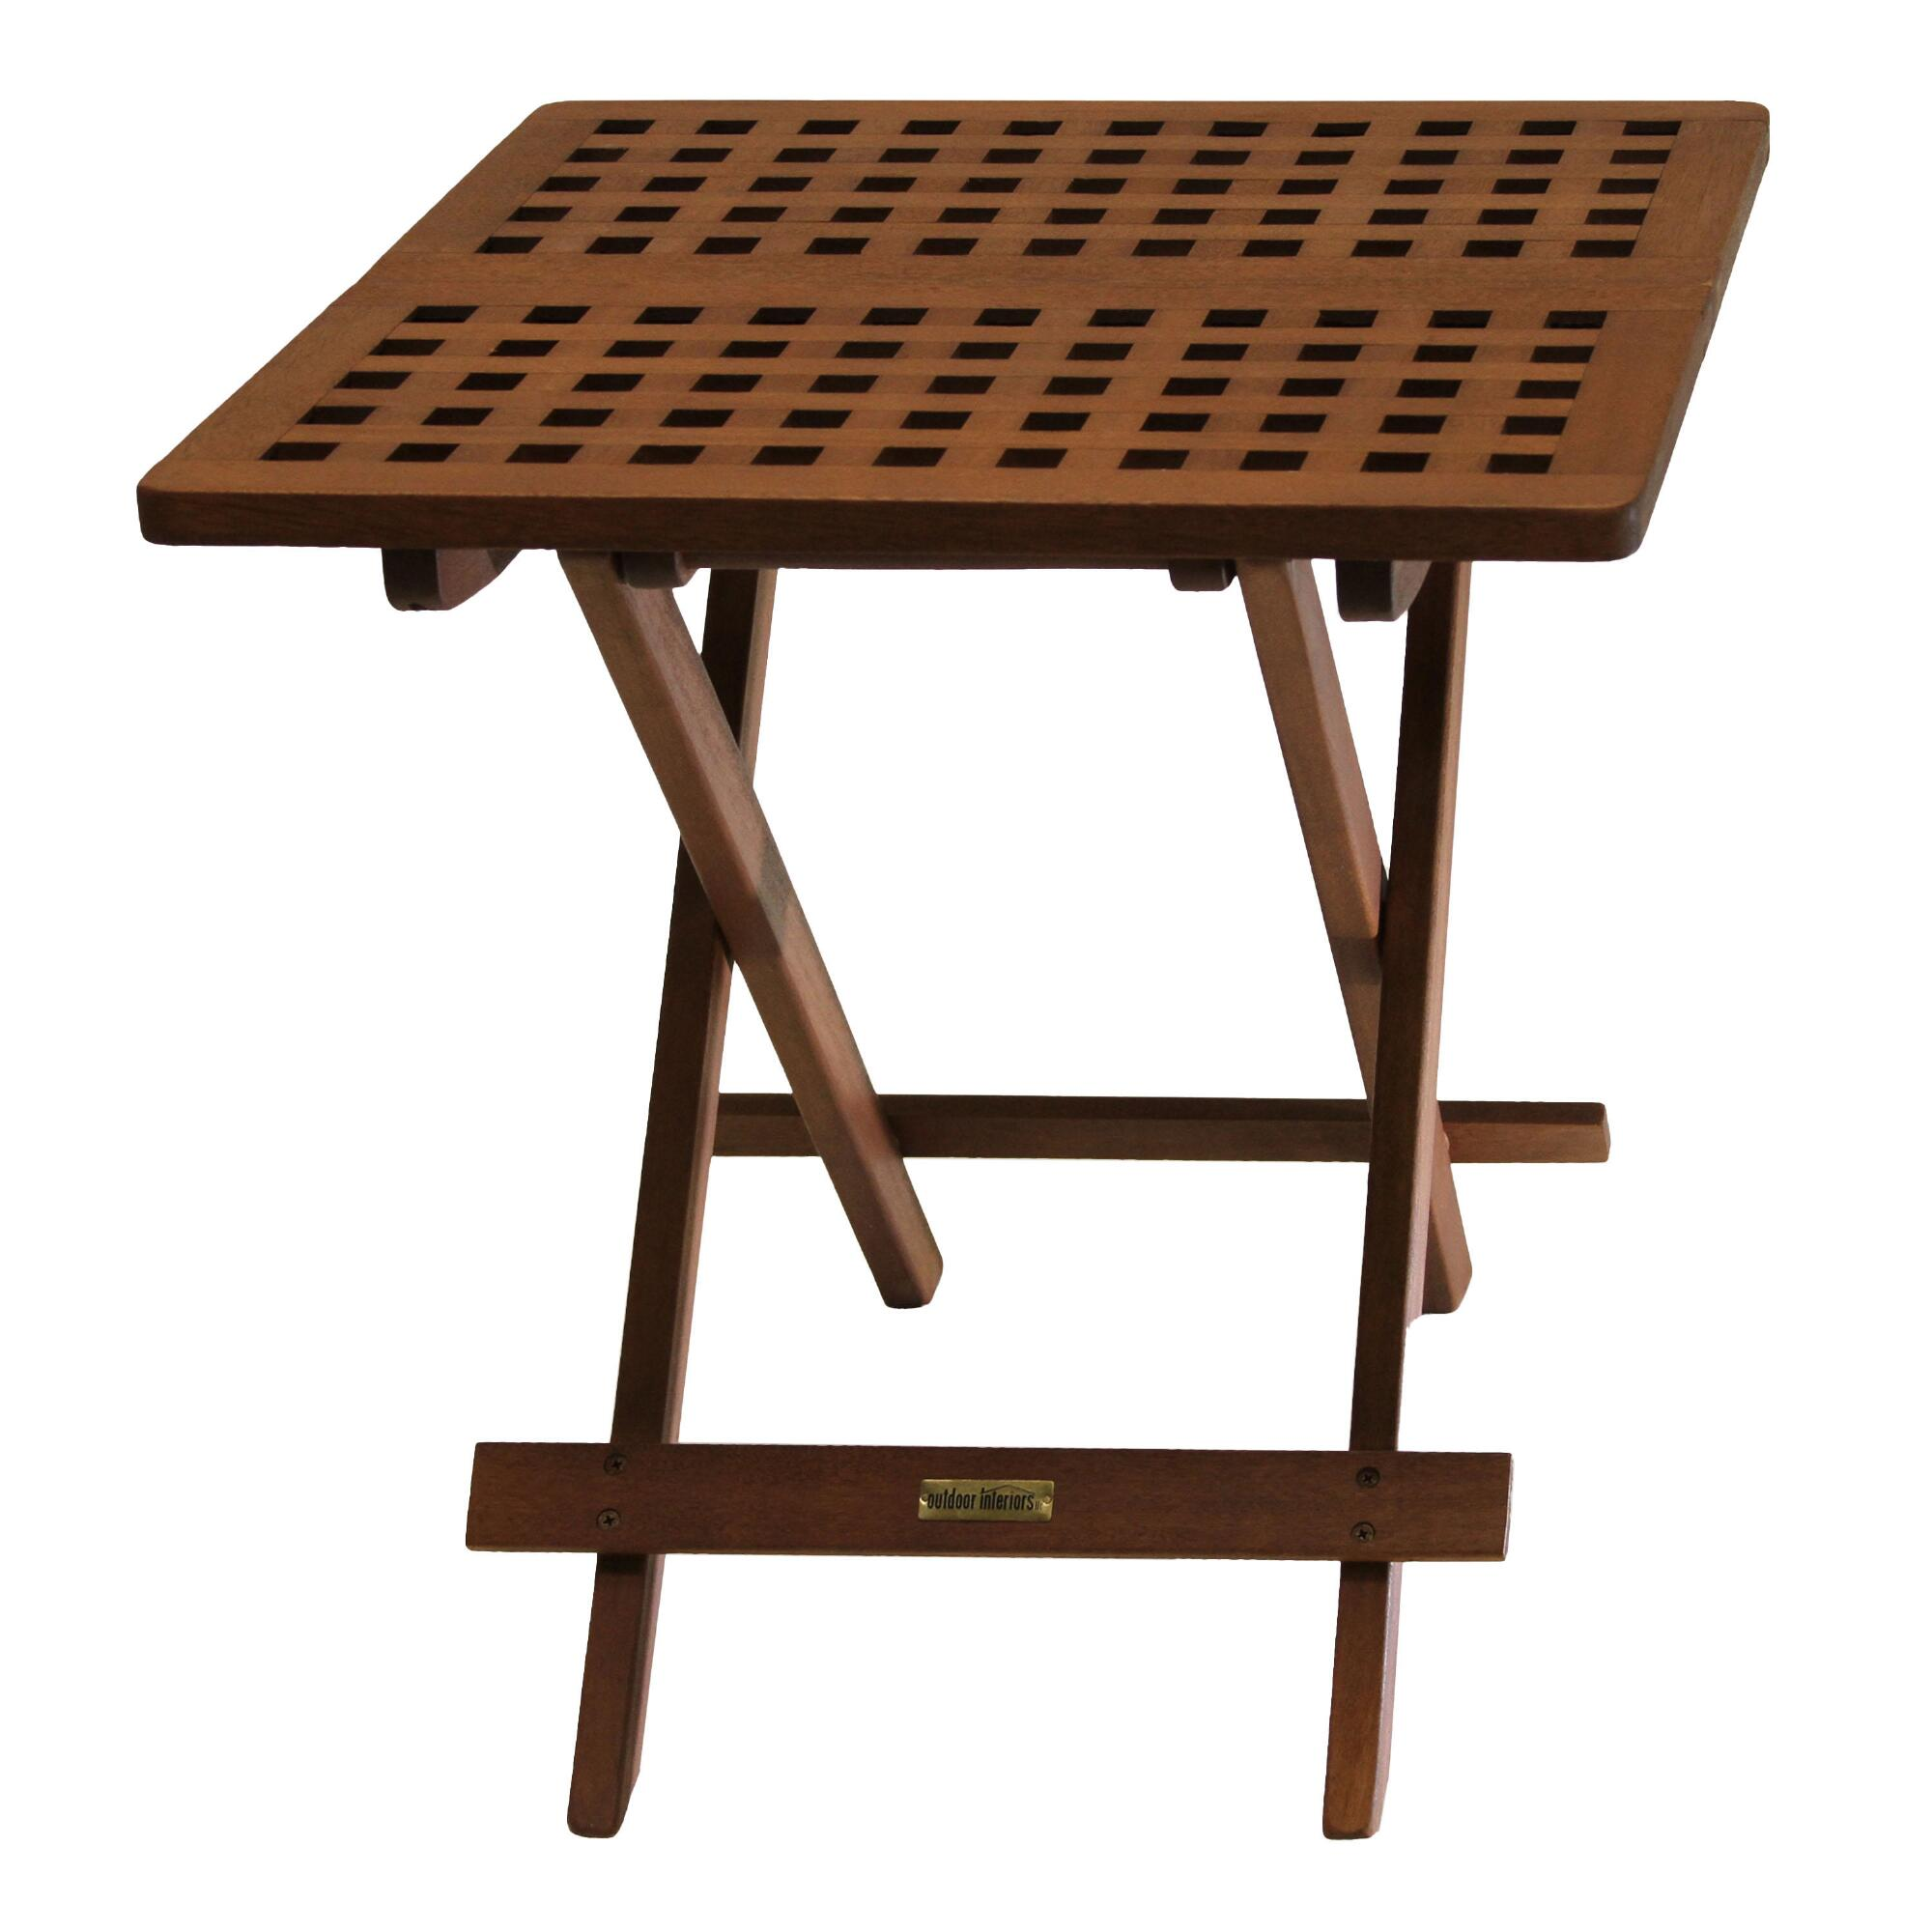 Wood Catania Folding Side Table: Brown by World Market